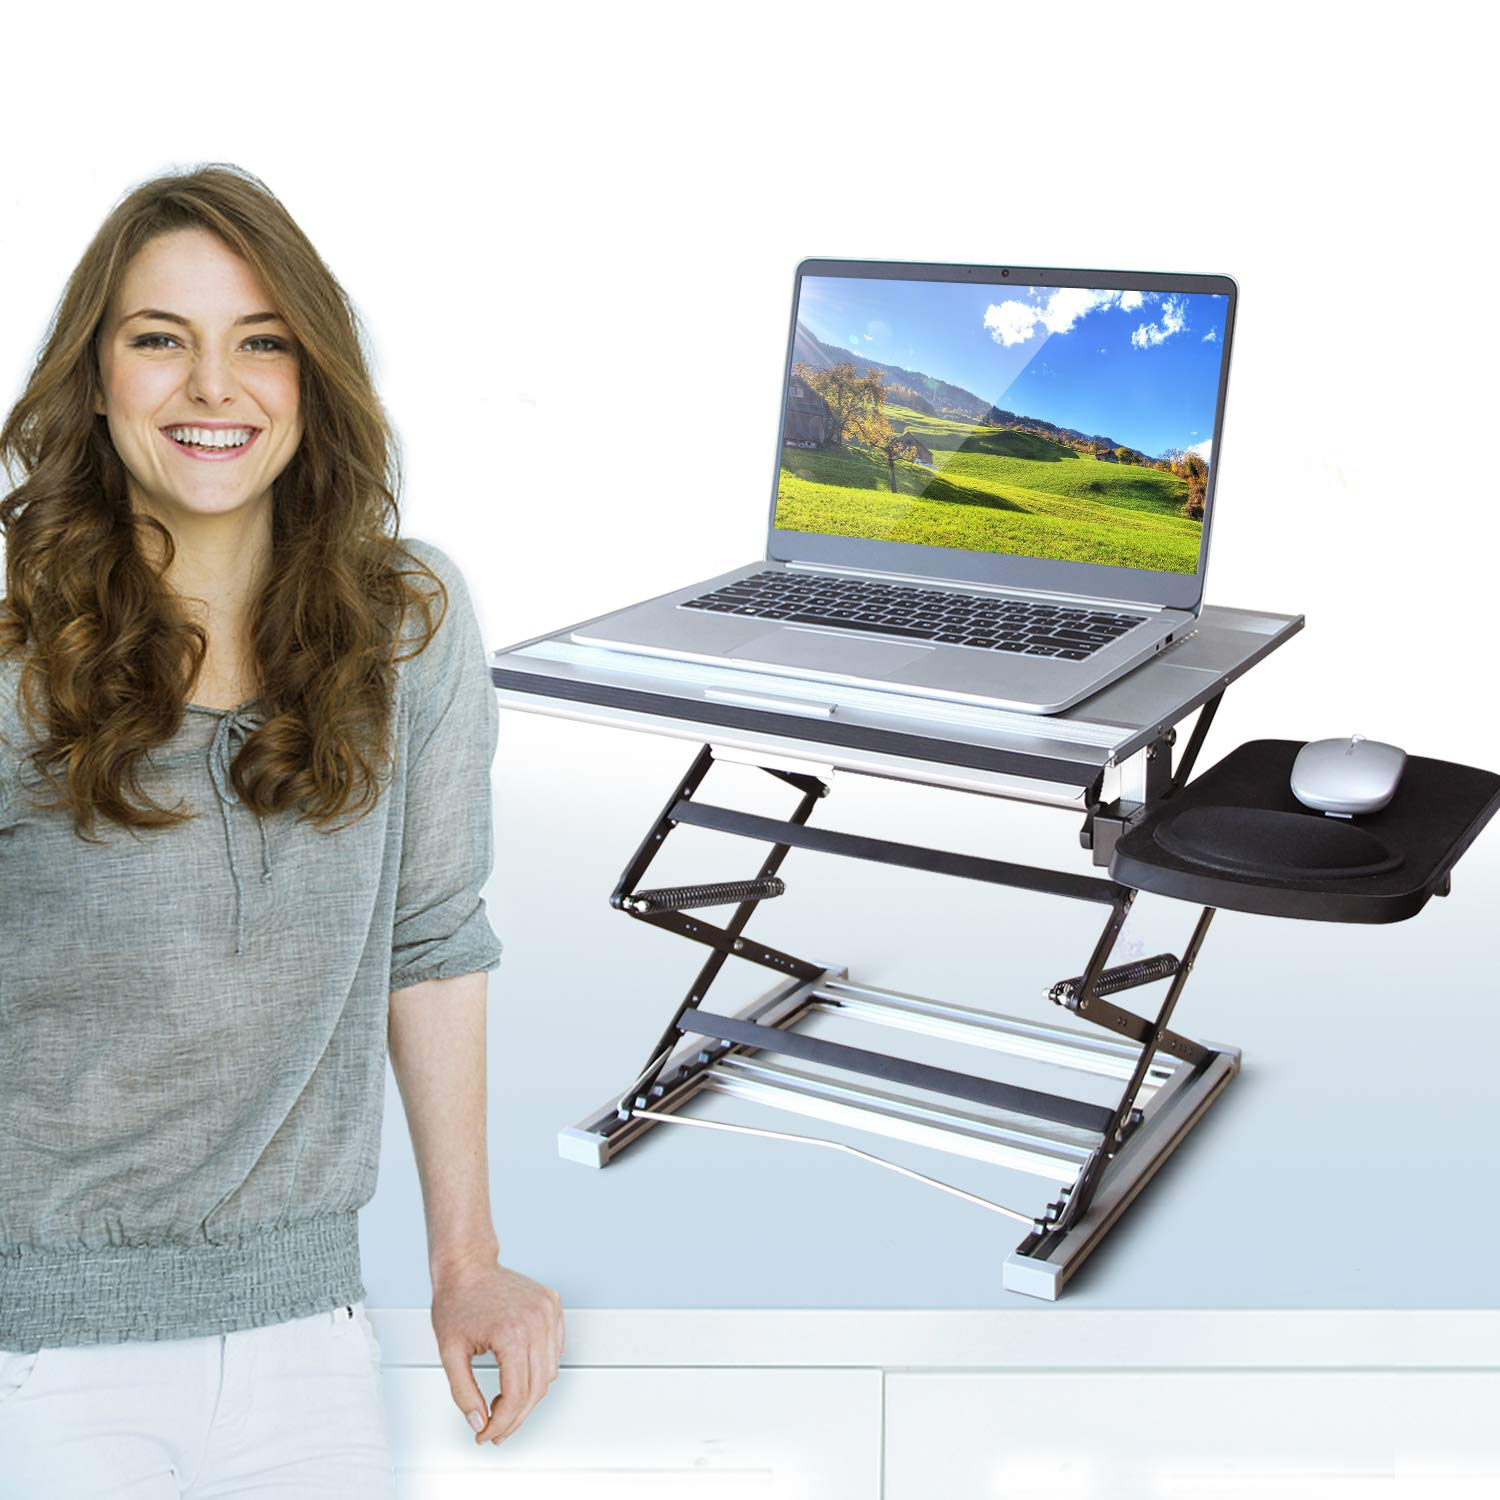 UPPEL Laptop Desk, Height Adjustable 7 Heights 3 Angles Stand Up Desk Use as a Portable Holder for Writing, Standing Desk and Home Office Folding Laptop Table